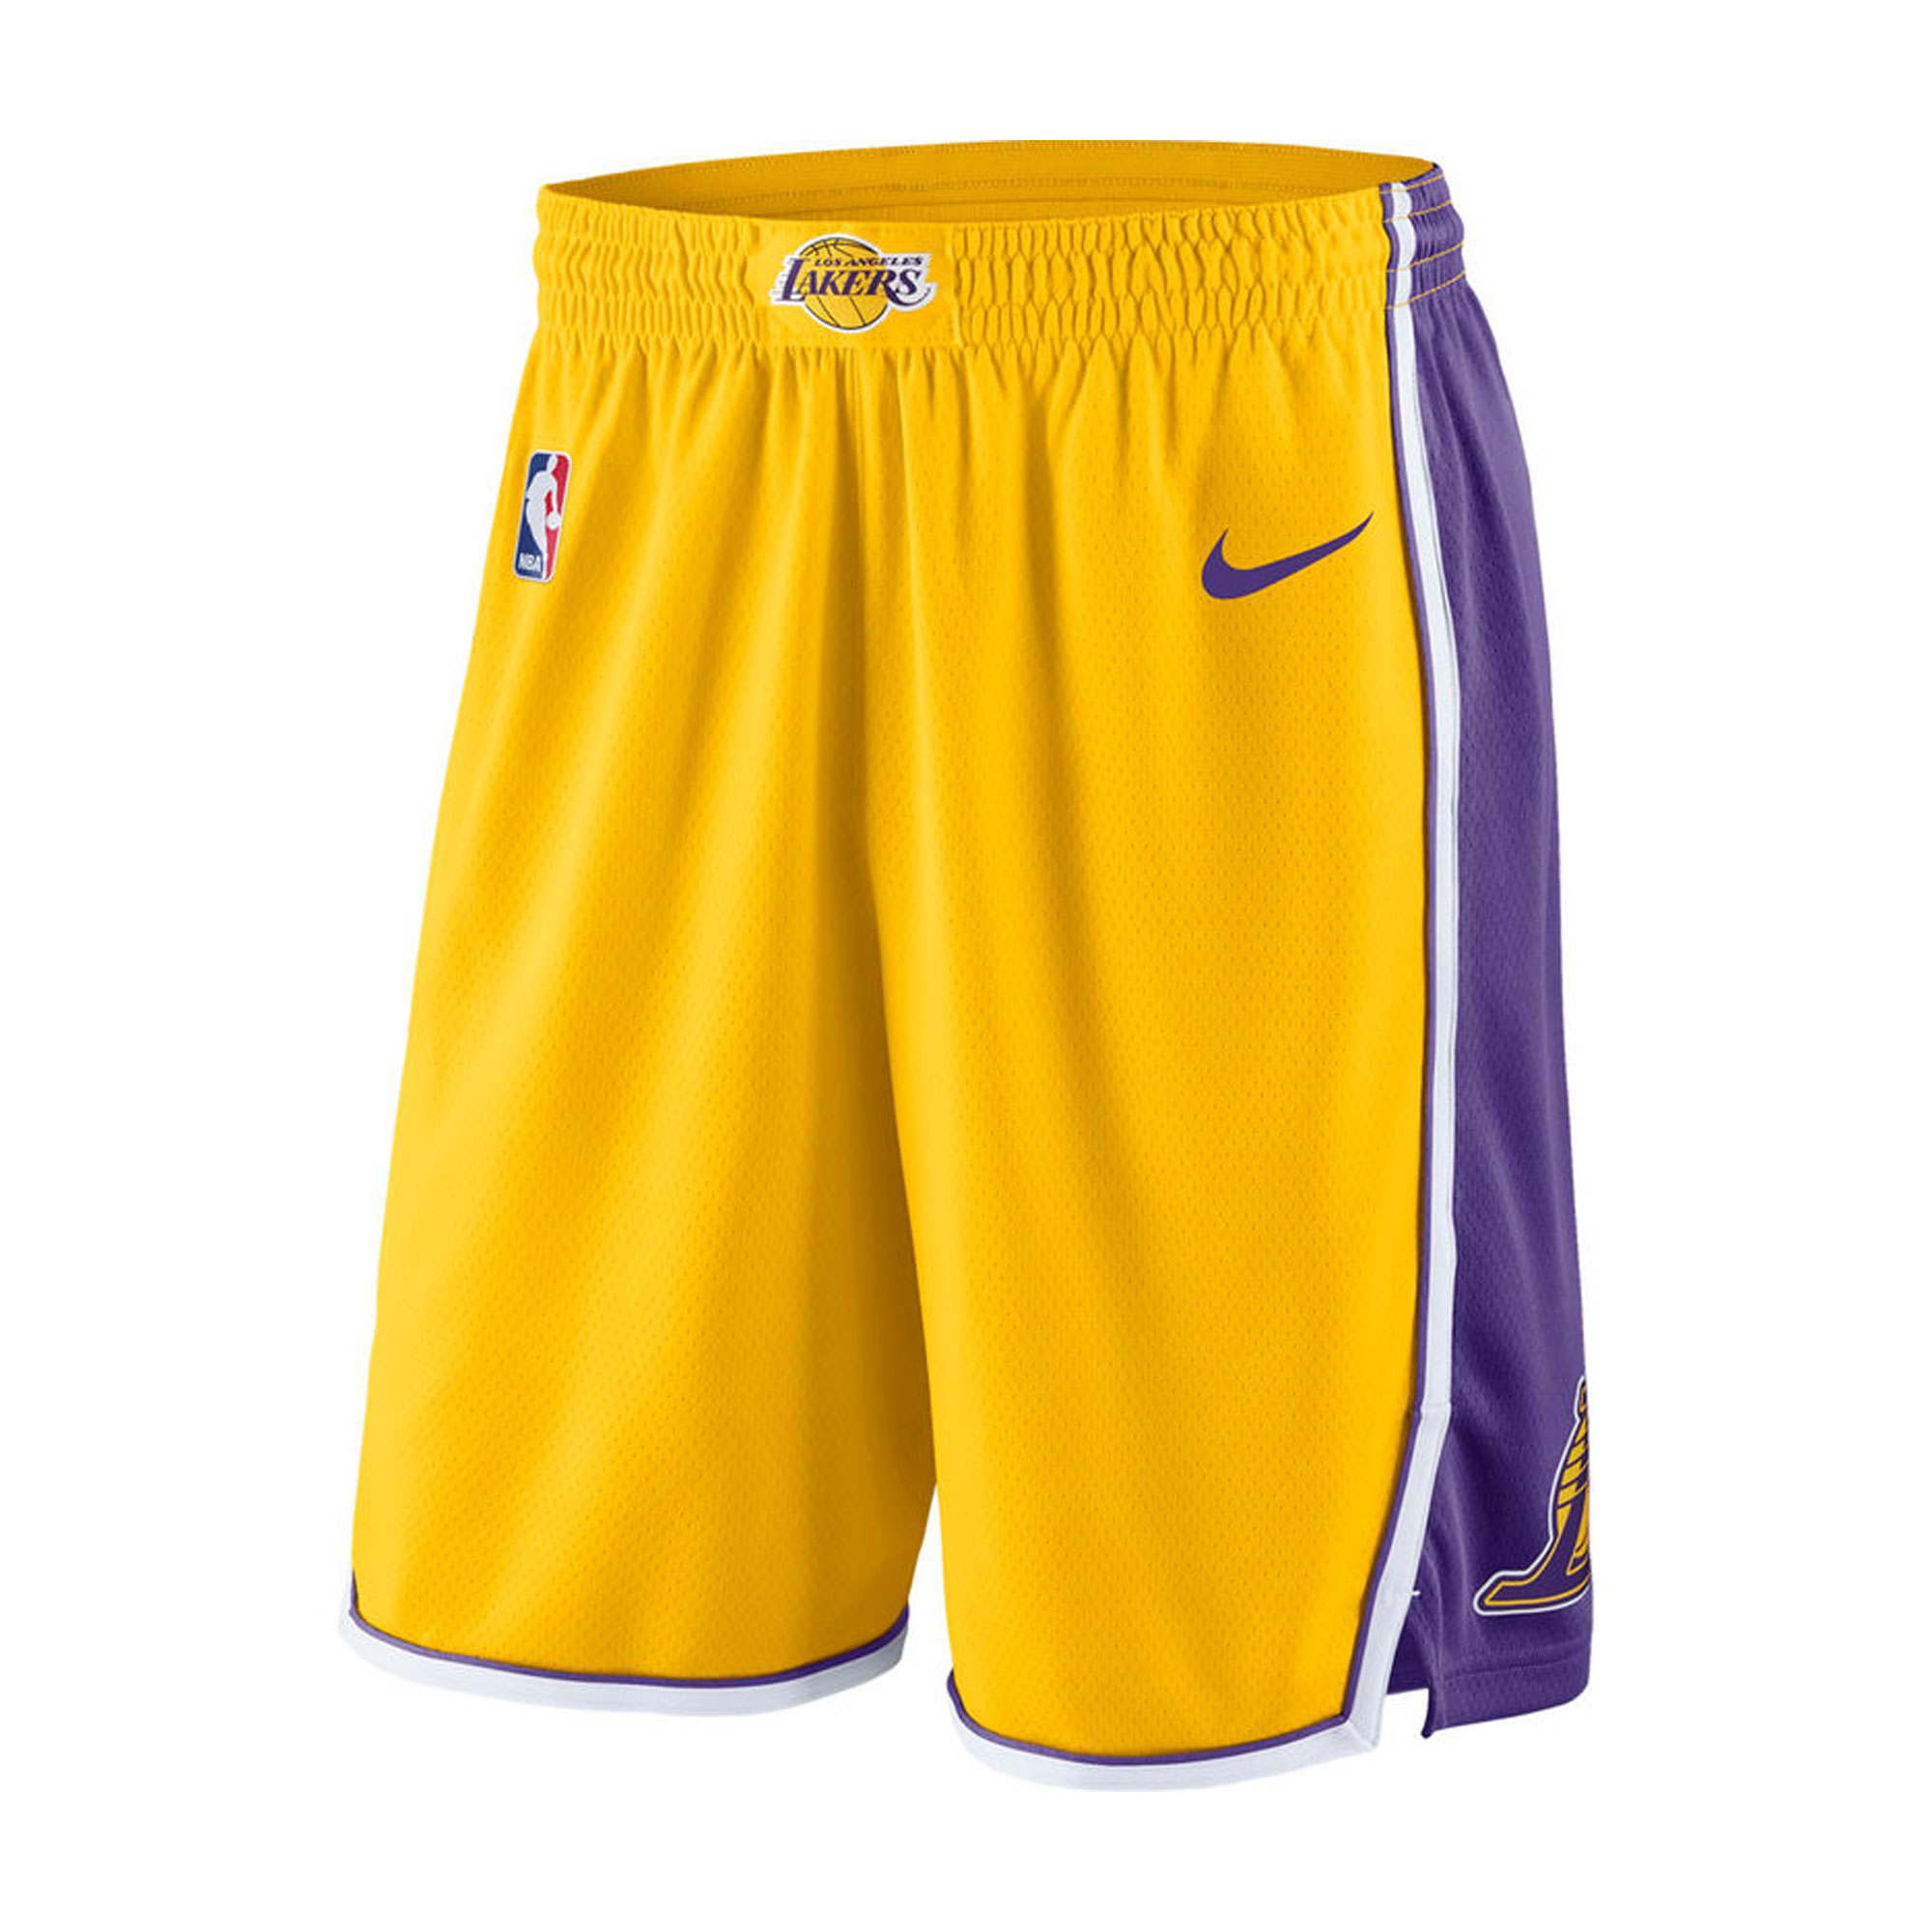 L.A. Lakers Short (SRT-YLW-LAKERS)